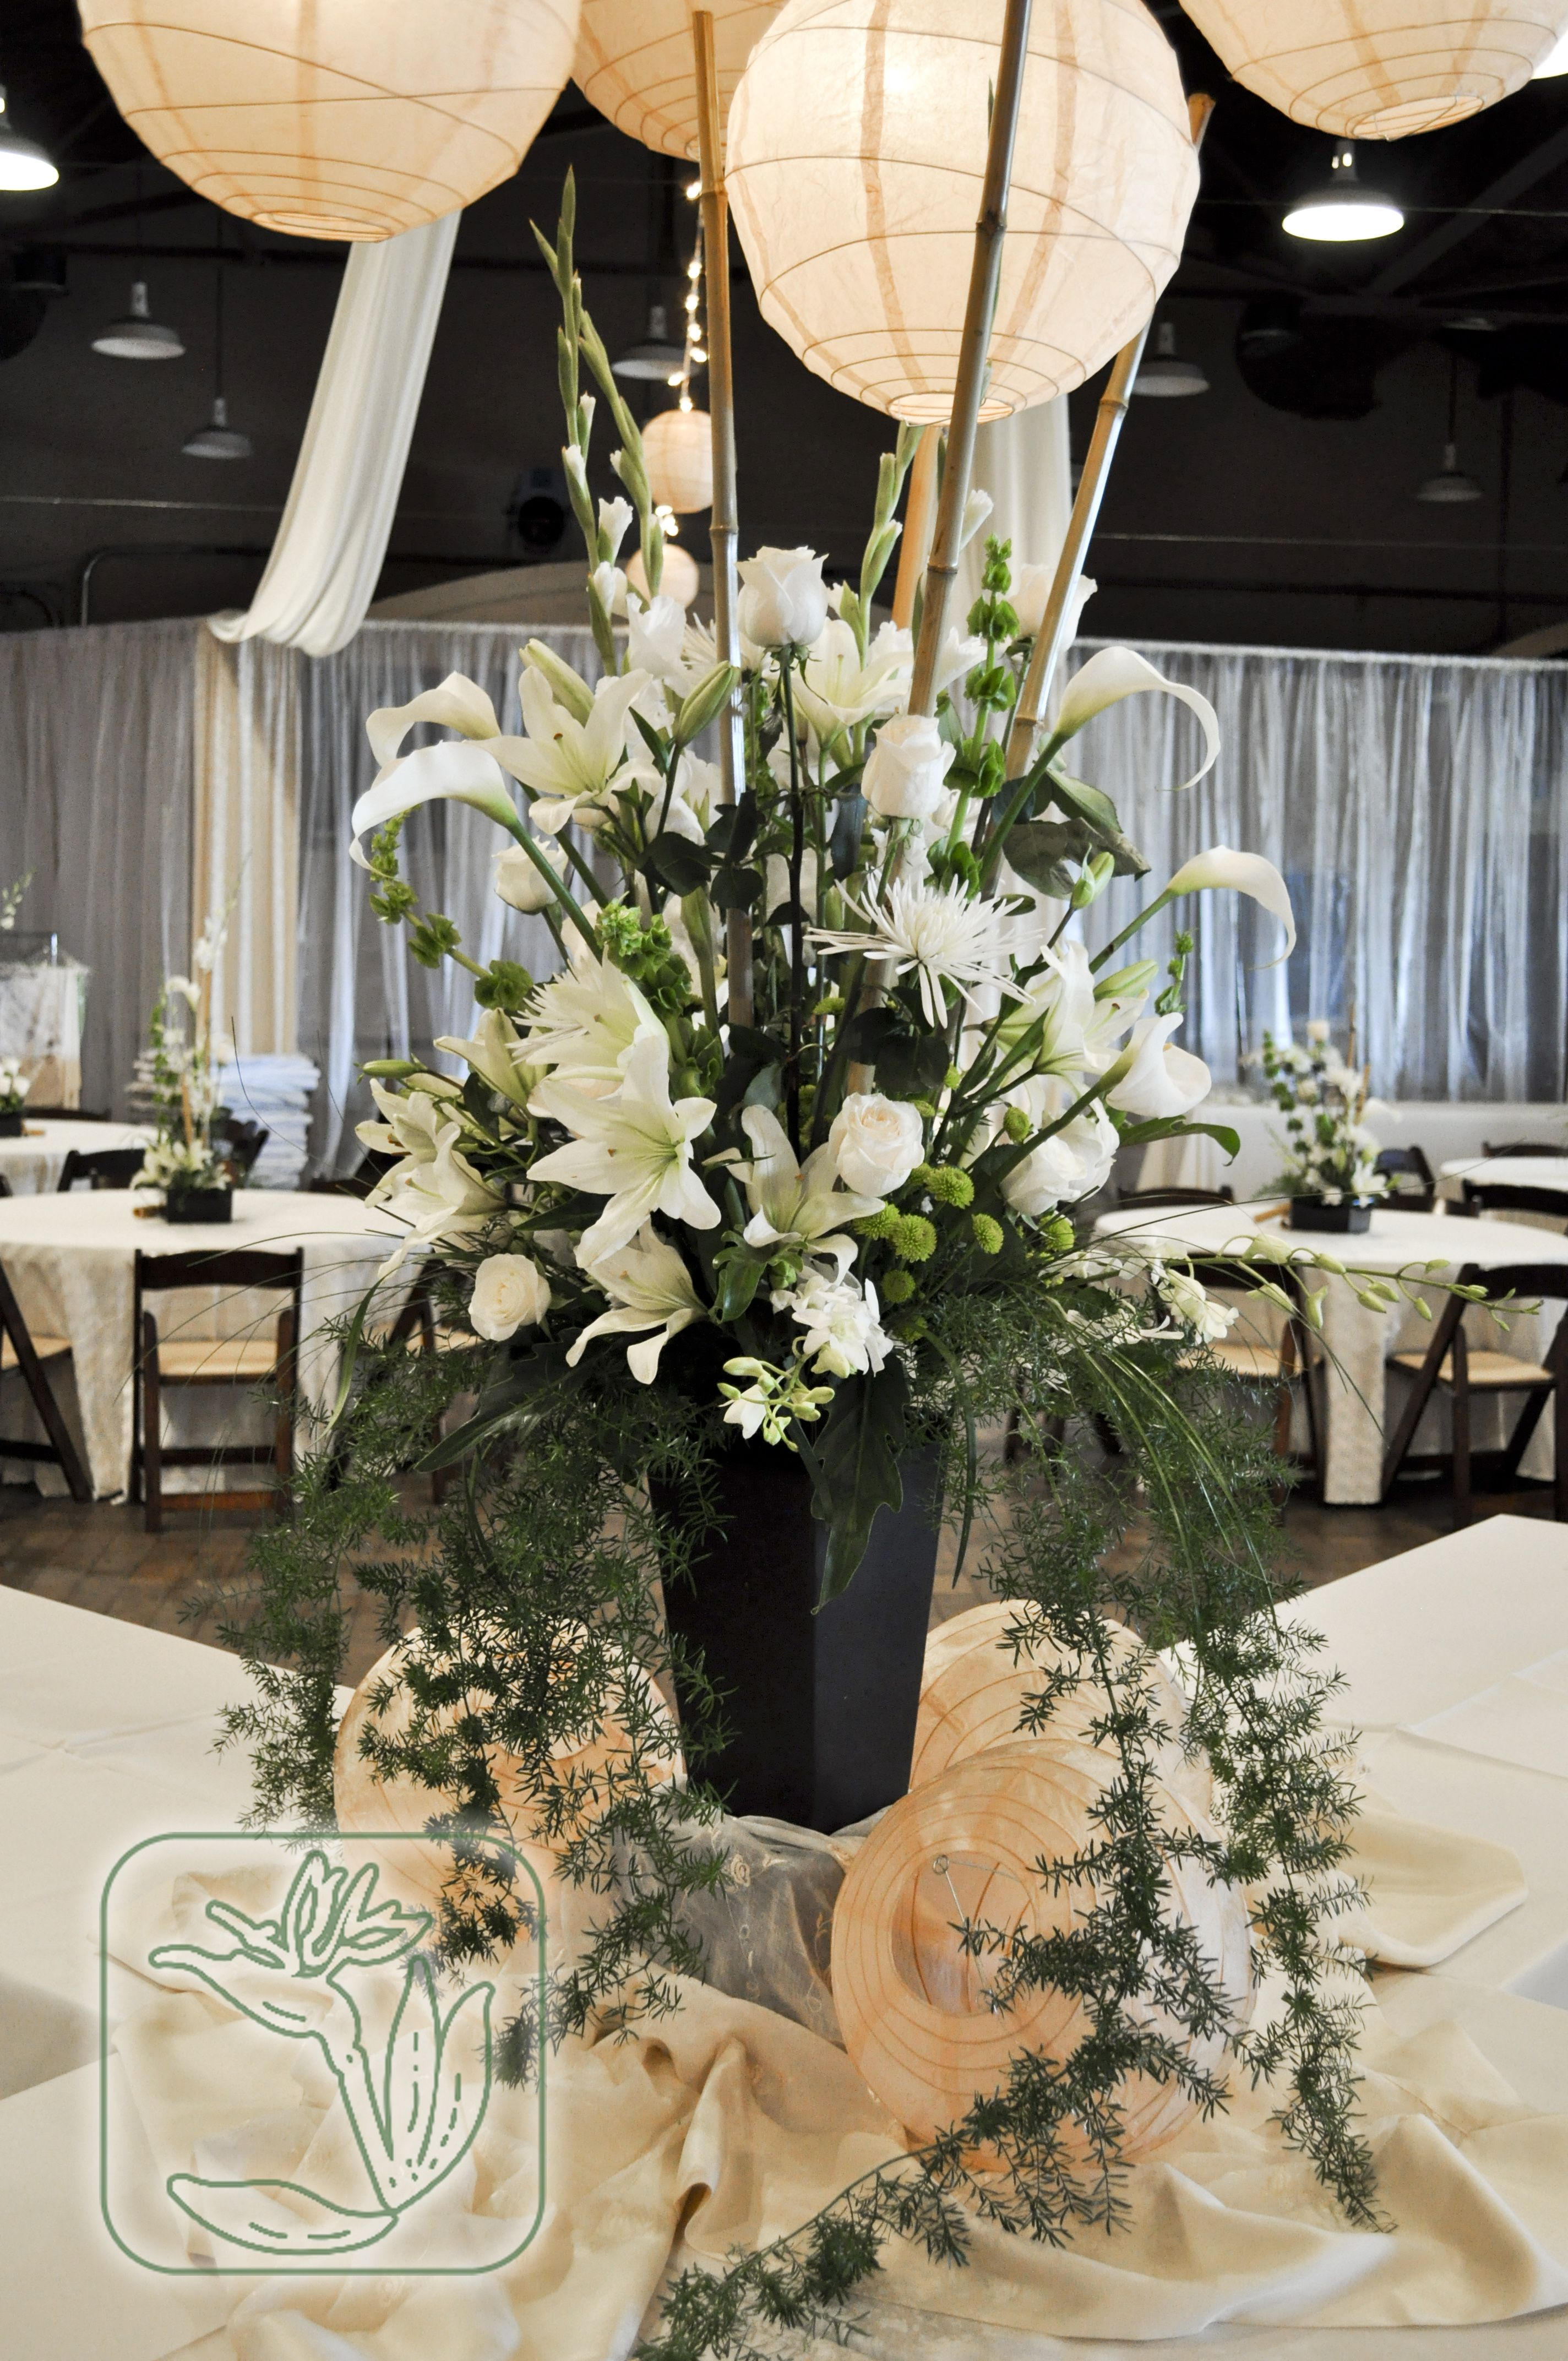 Utah Wedding Event Buffet Table Centerpiece White And